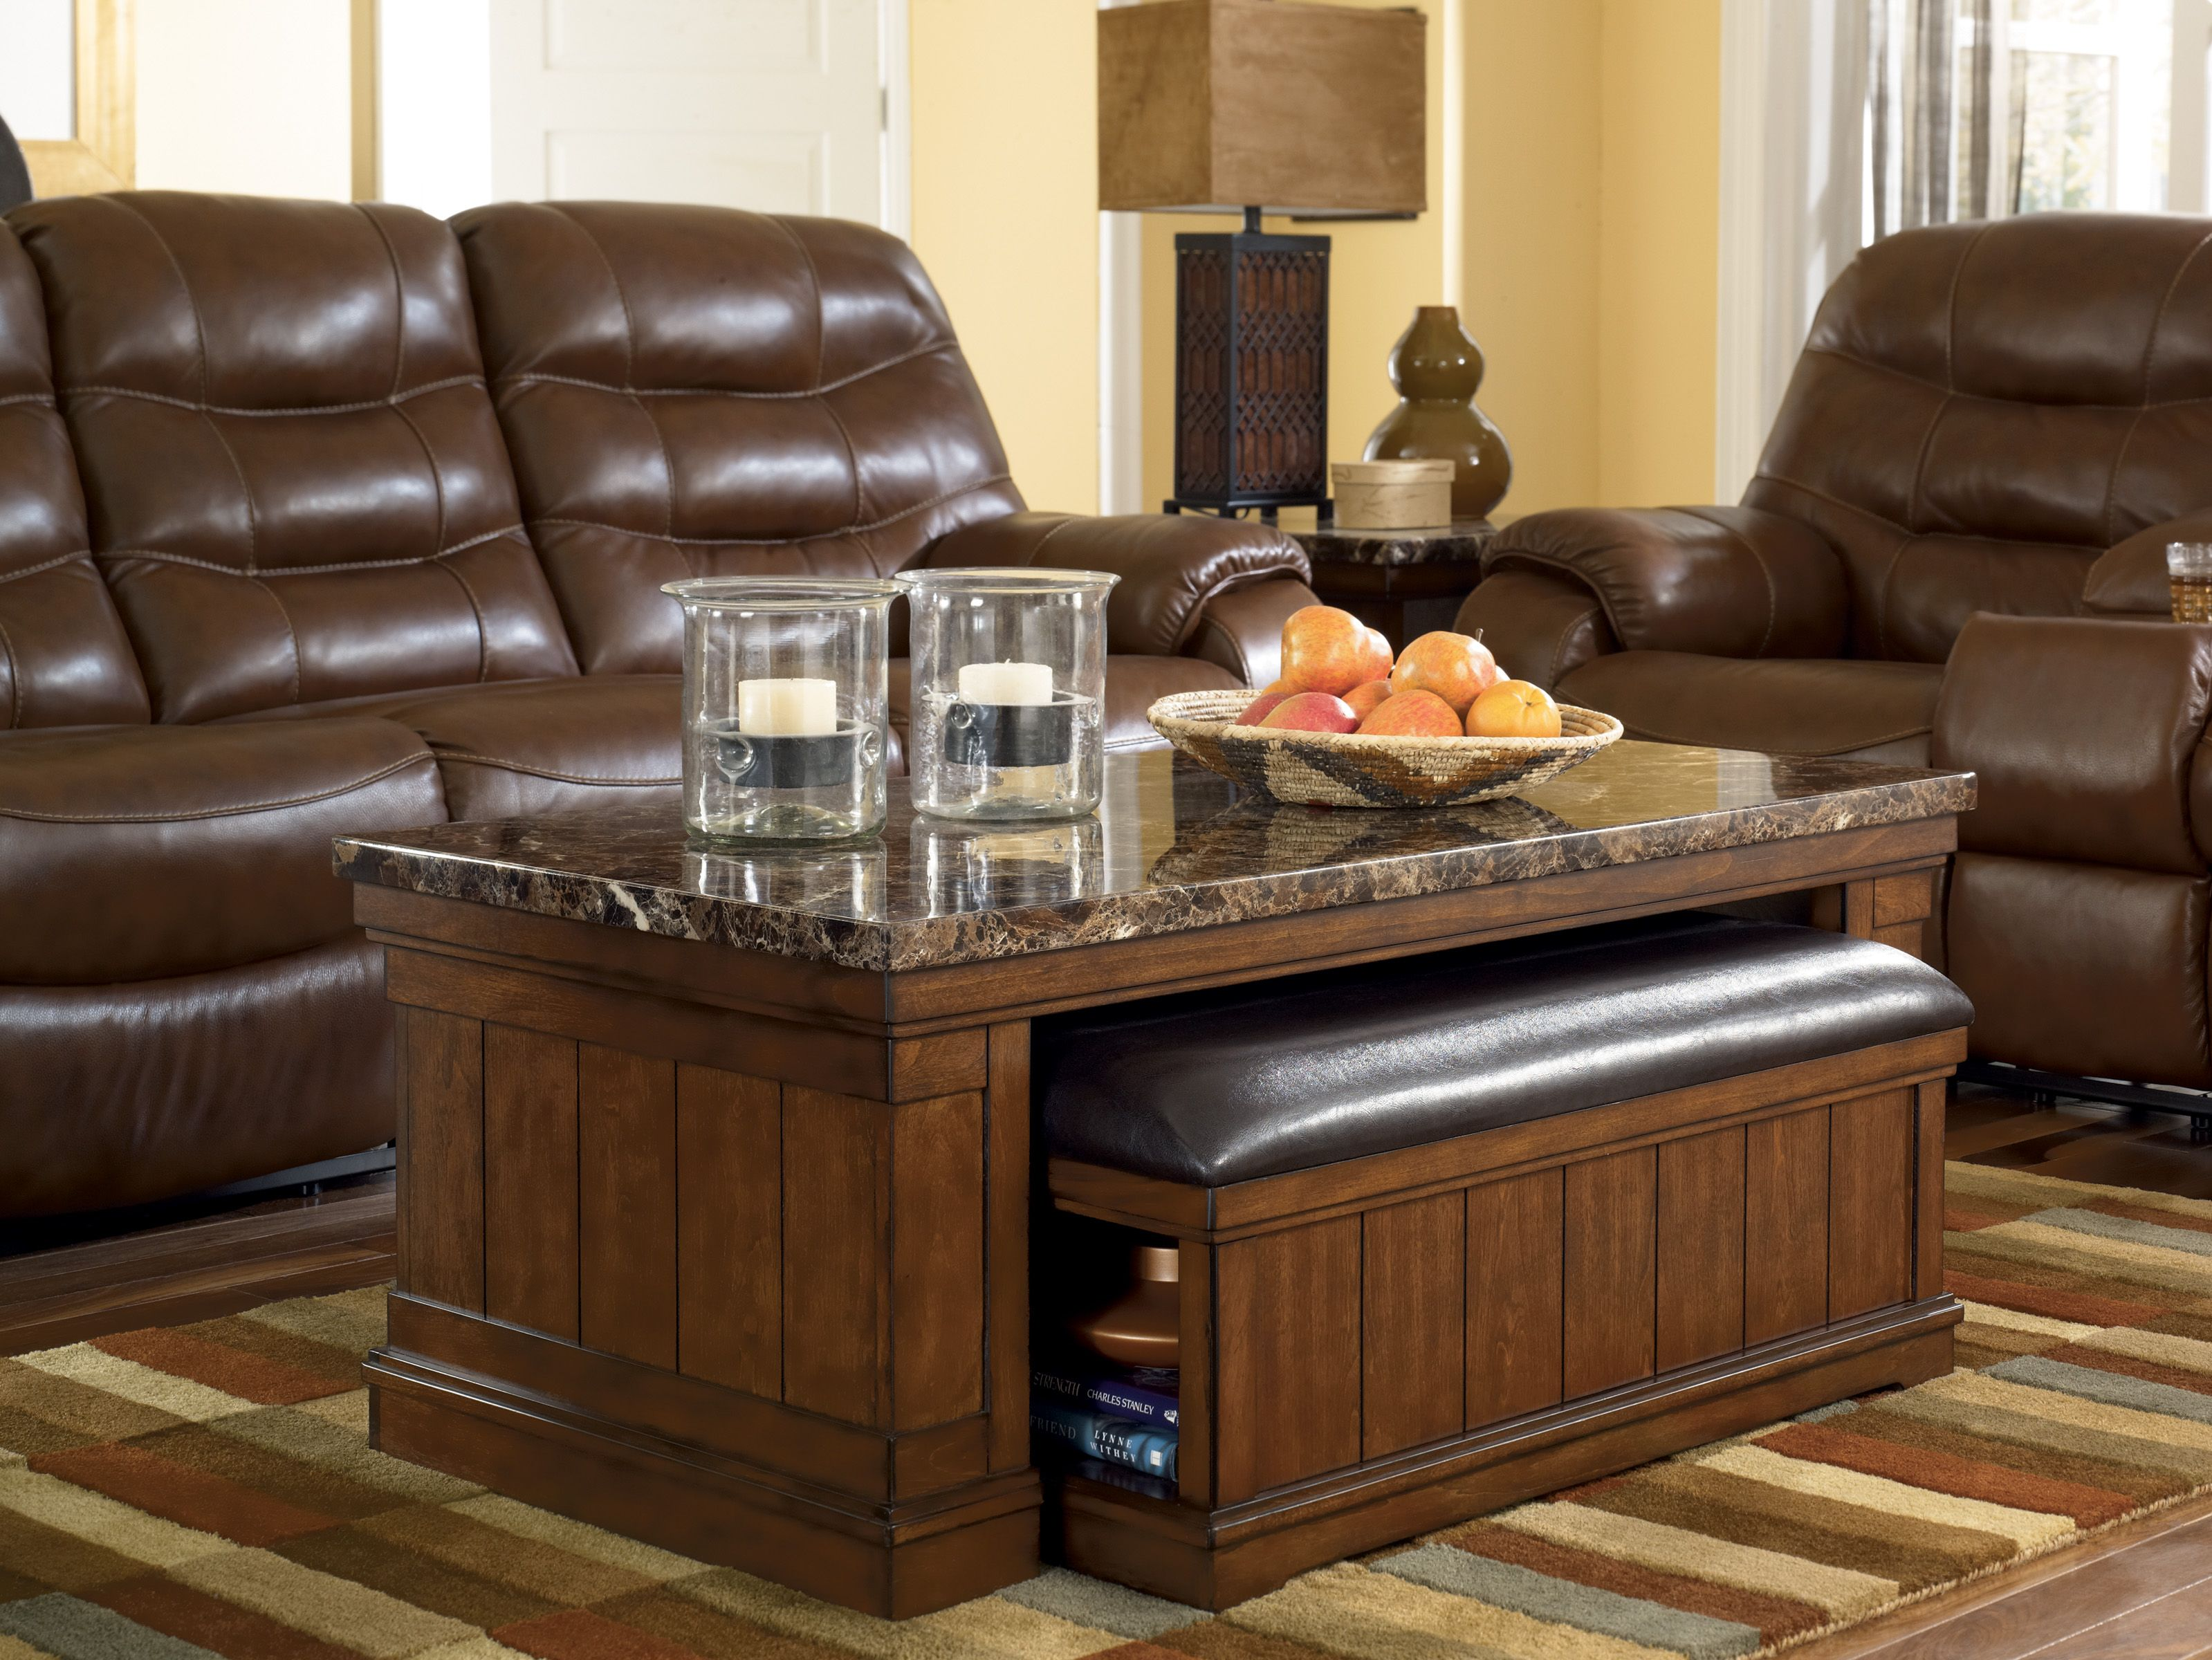 Merrill Coffee Table With Ottoman With The Warm Brown Finish Flowing Beautifully Over The Planked Si Coffee Table Ottoman Coffee Table Marble Top Coffee Table [ 2400 x 3198 Pixel ]